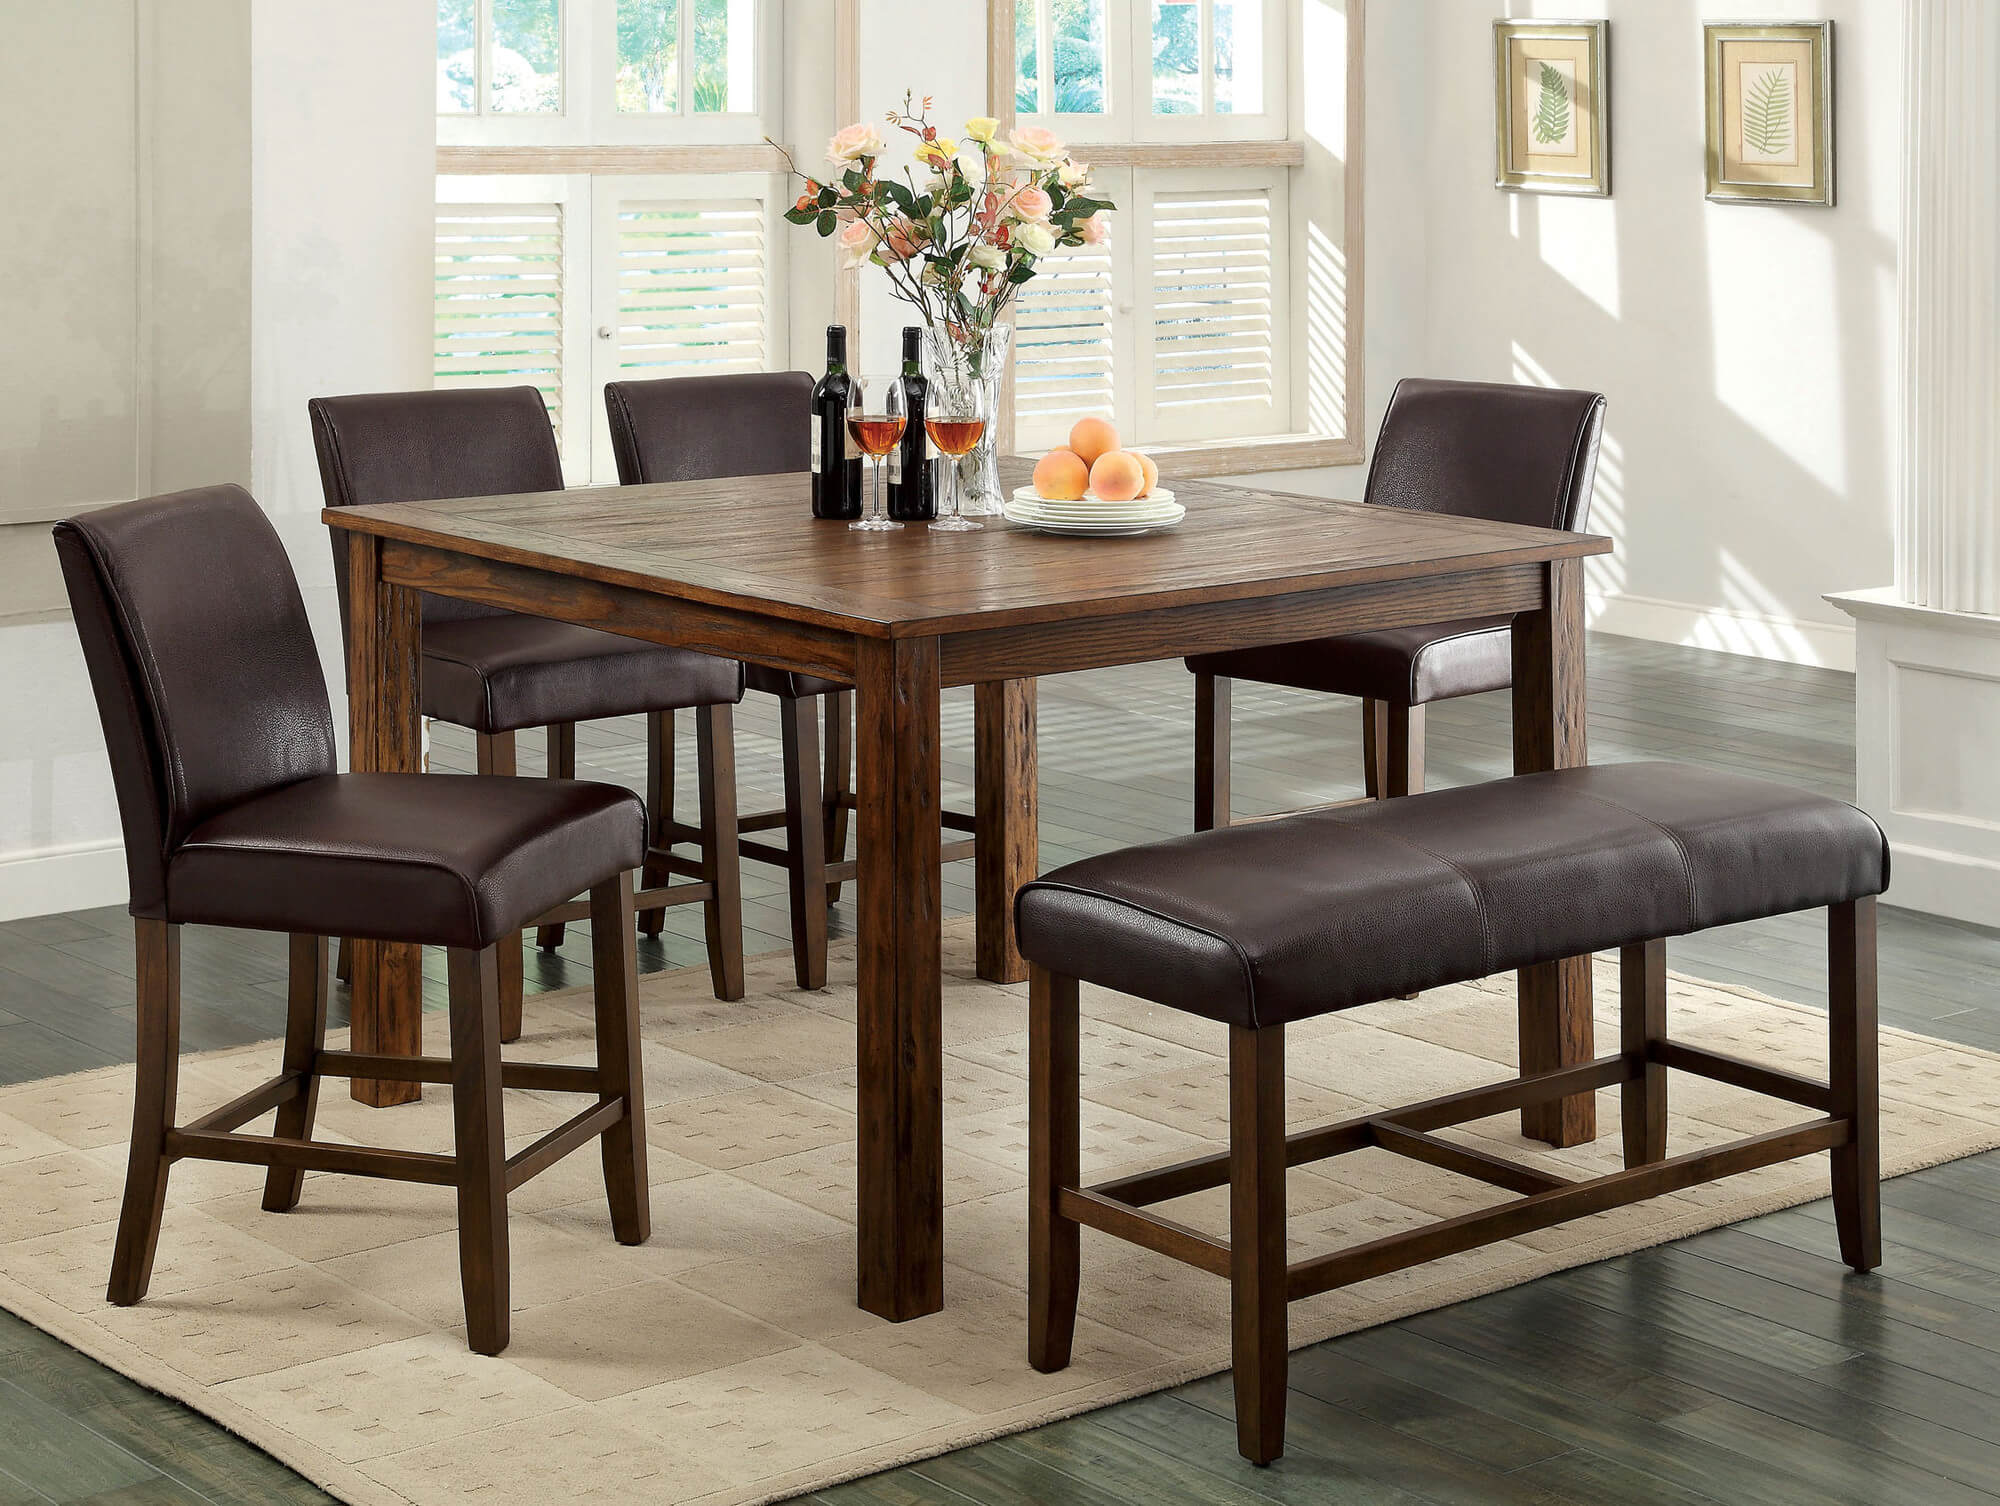 Attractive Counter Height Rustic Dining Room Set With Bench. Wood Is Dark Oak Finish;  Constructed